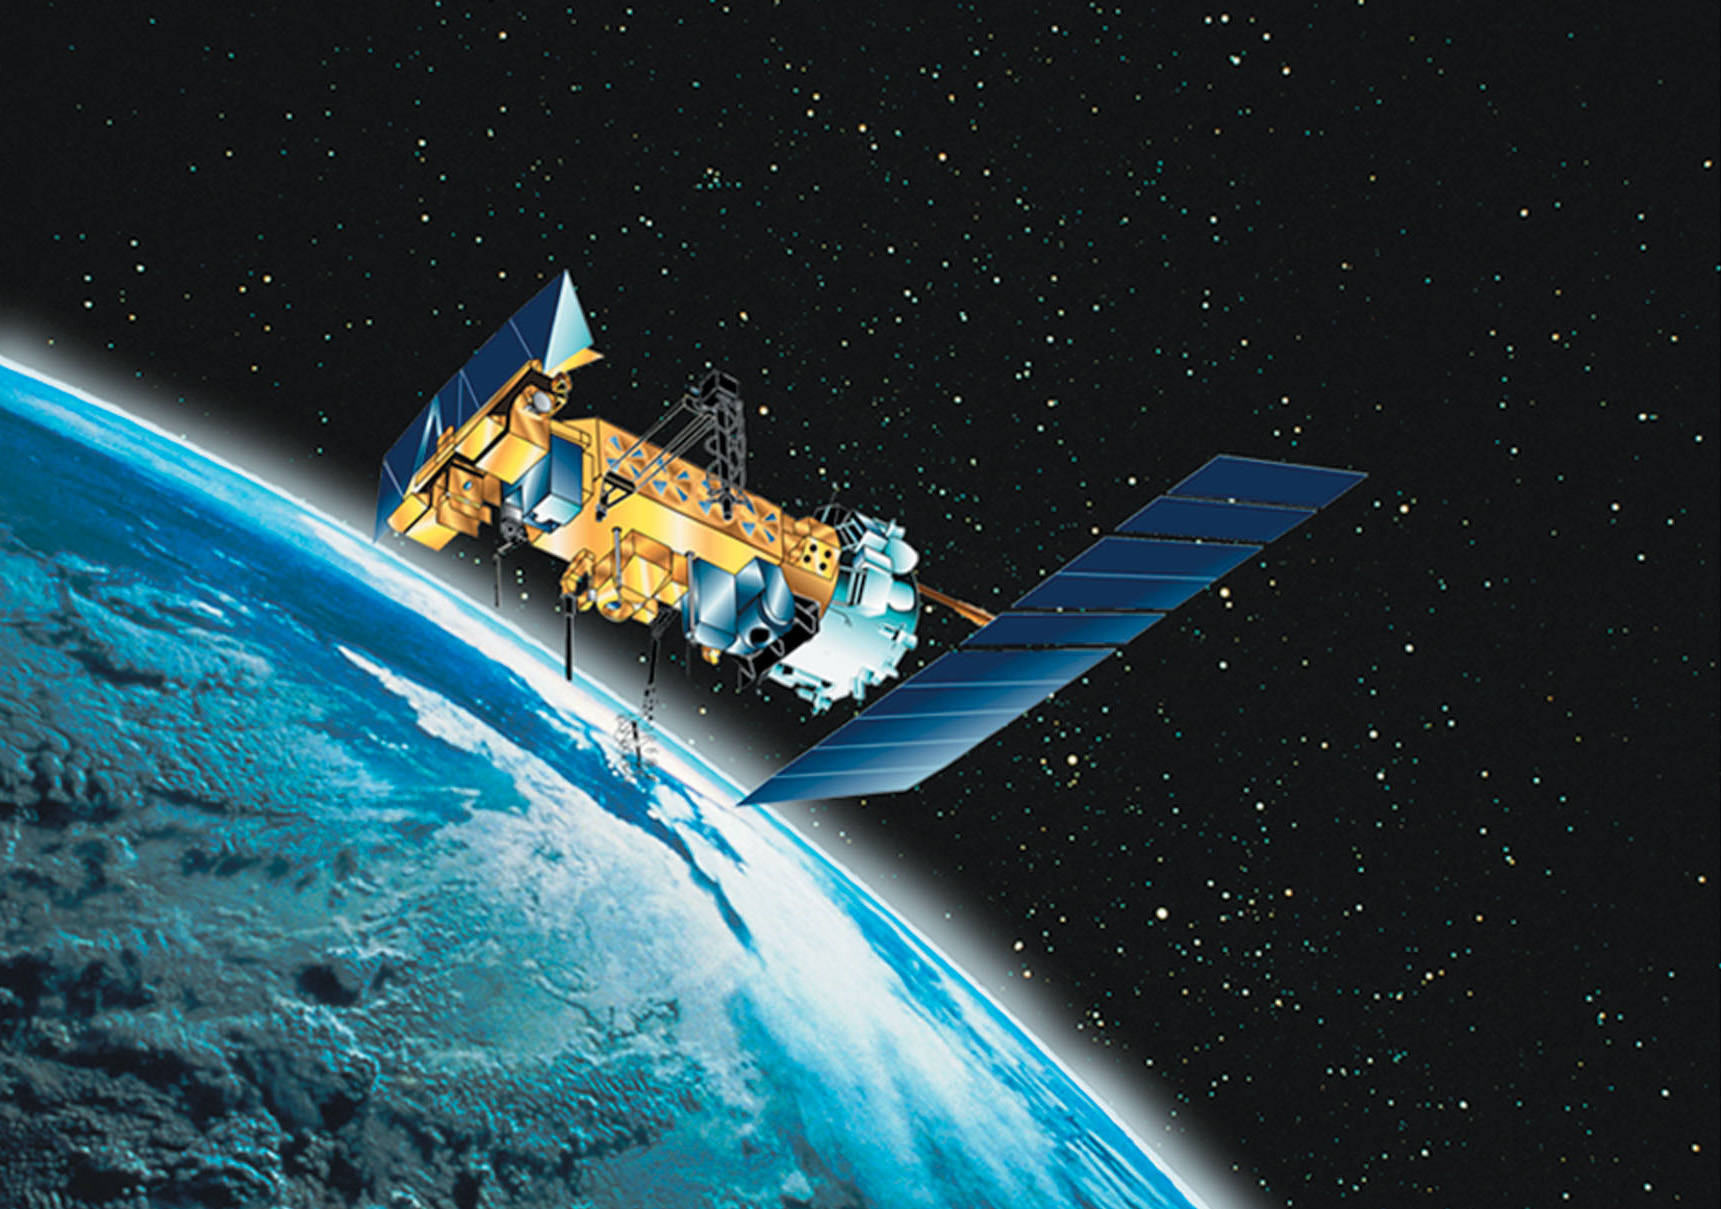 names of artificial satellites launched by India